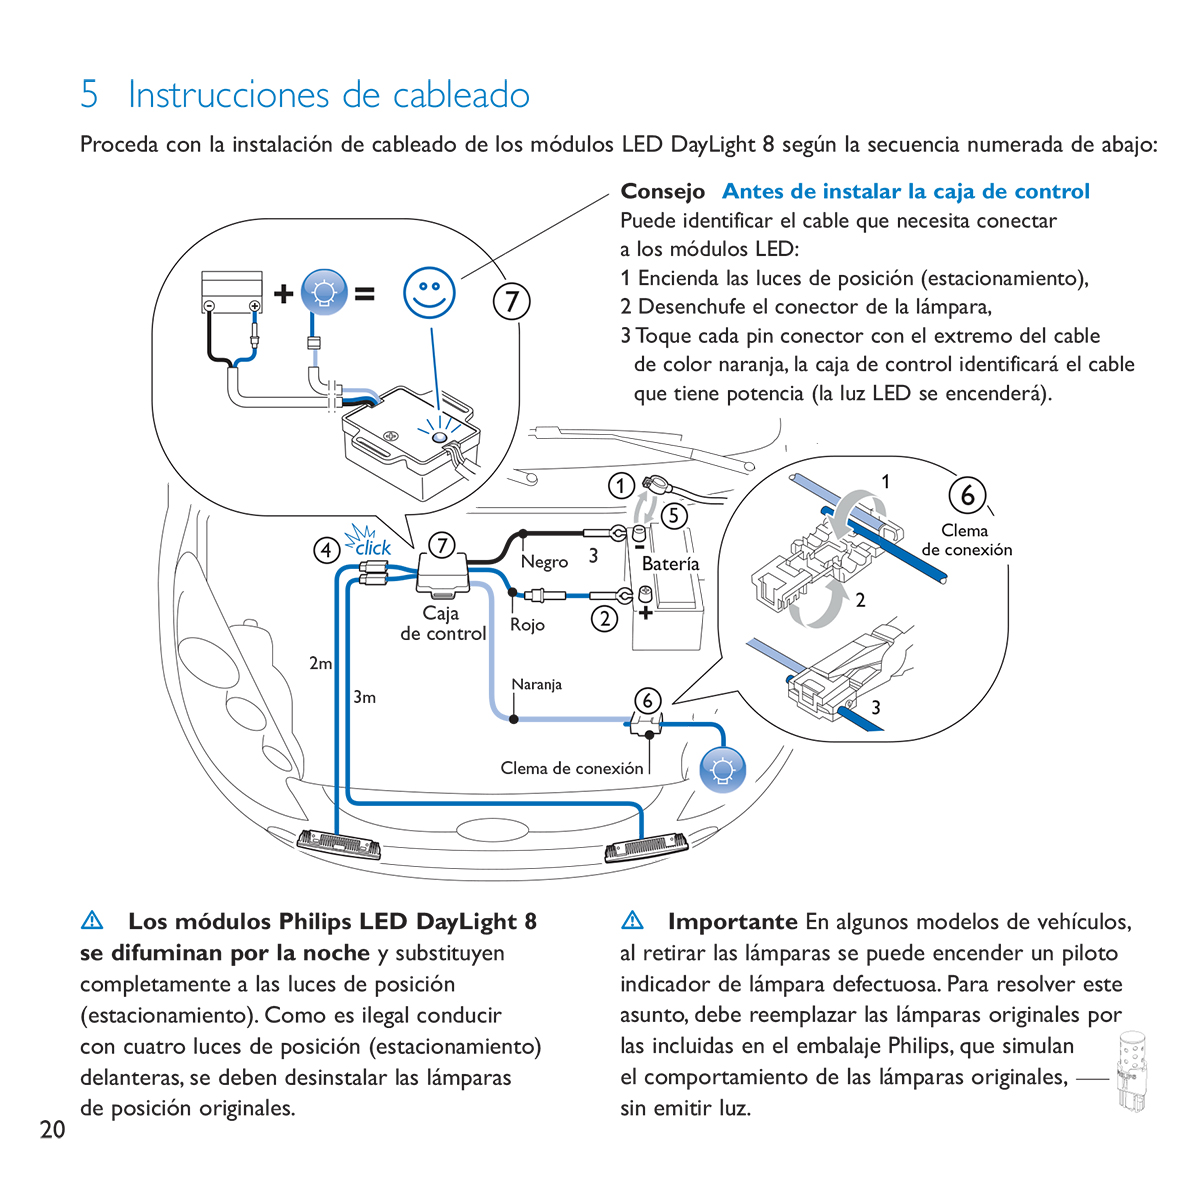 Philips LED DayLight 8 user guide - Inside page - Spanish